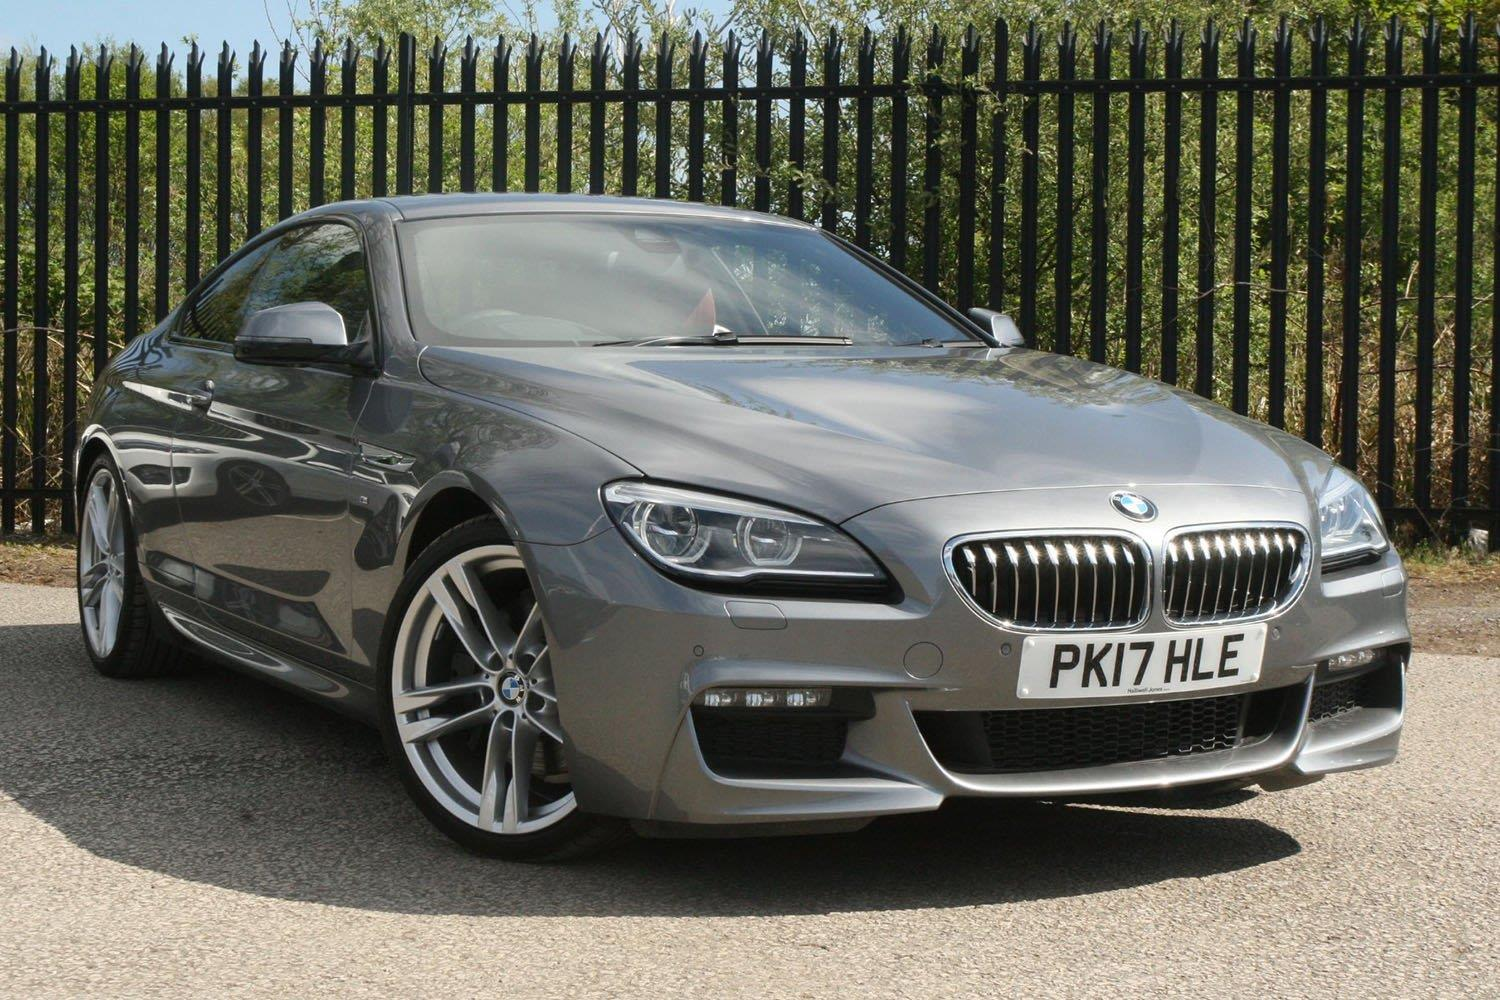 BMW 6 Series Coupé PK17HLE - Image 6